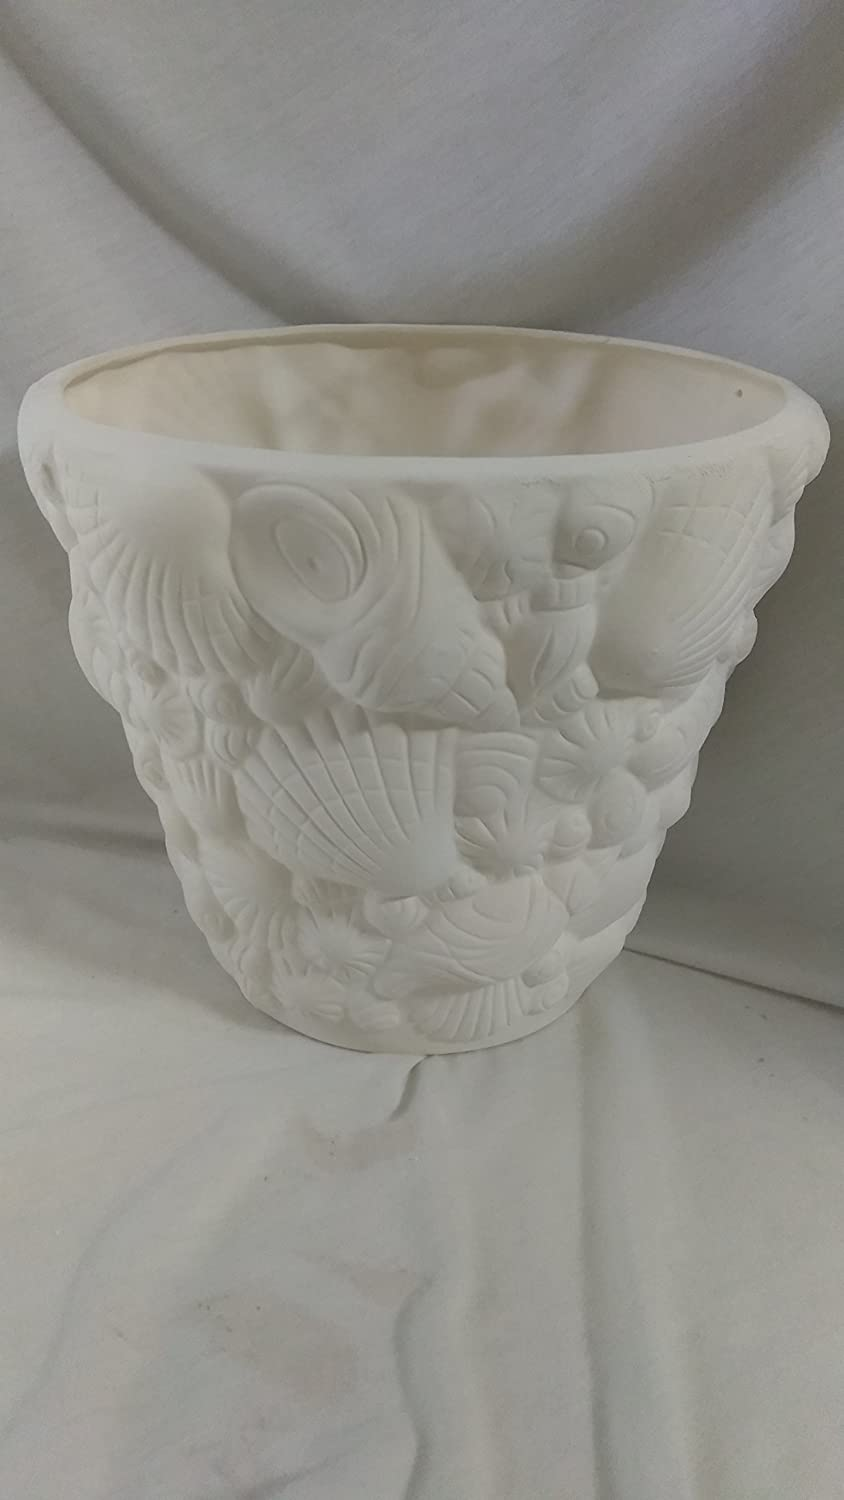 Ready to paint Lg Seashell Planter Ceramic Bisque